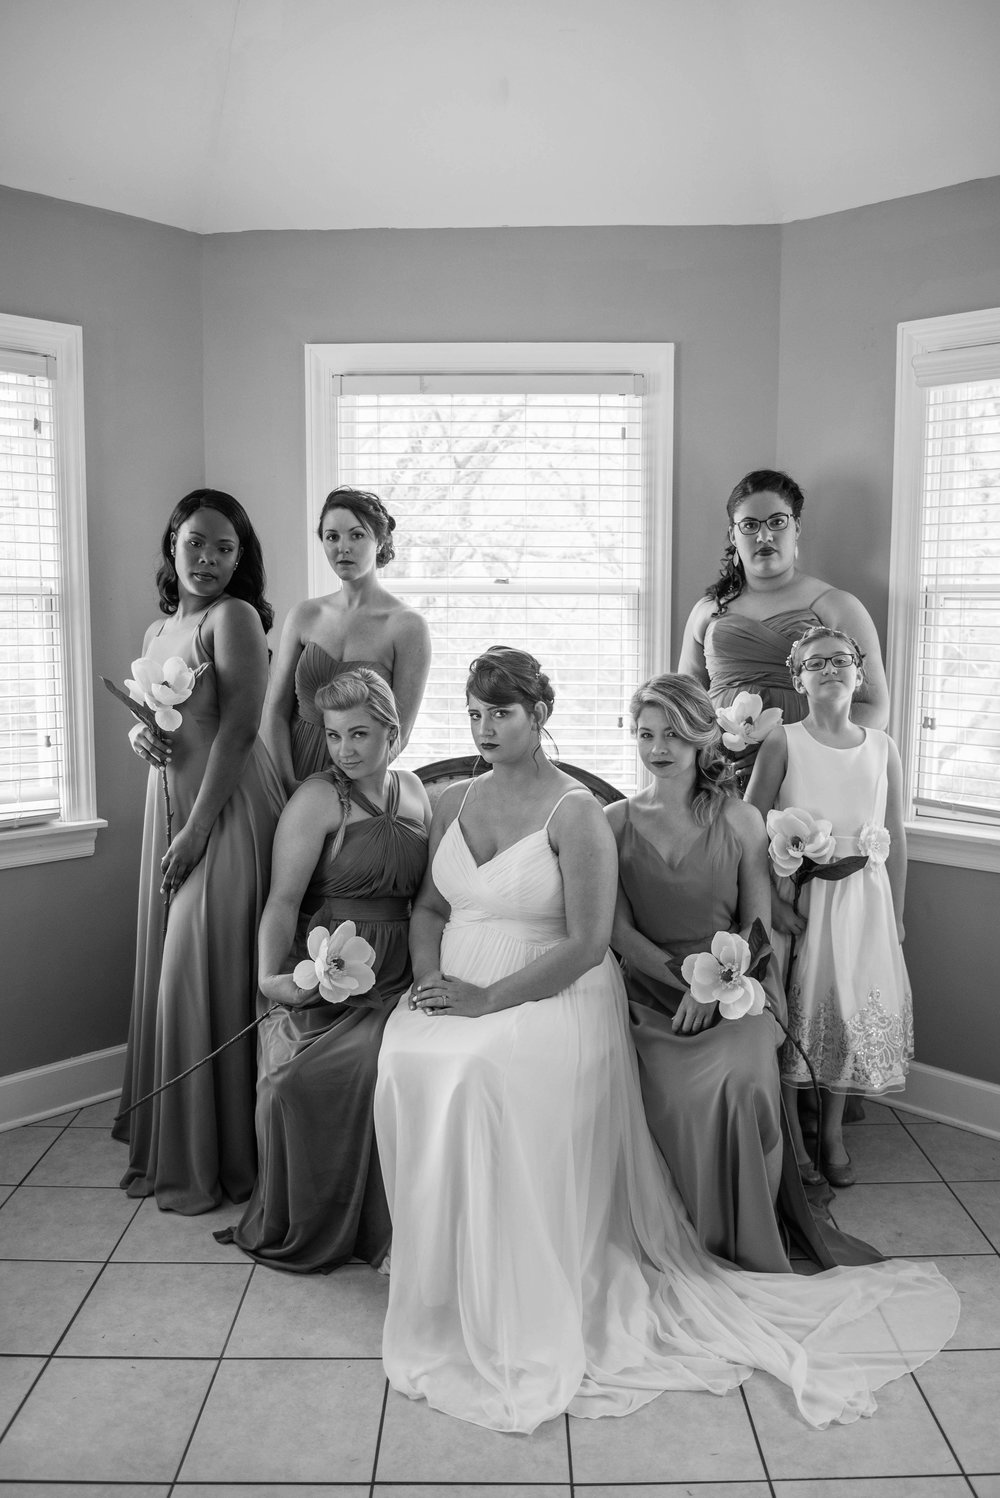 weddingpartyb&w-002.jpg